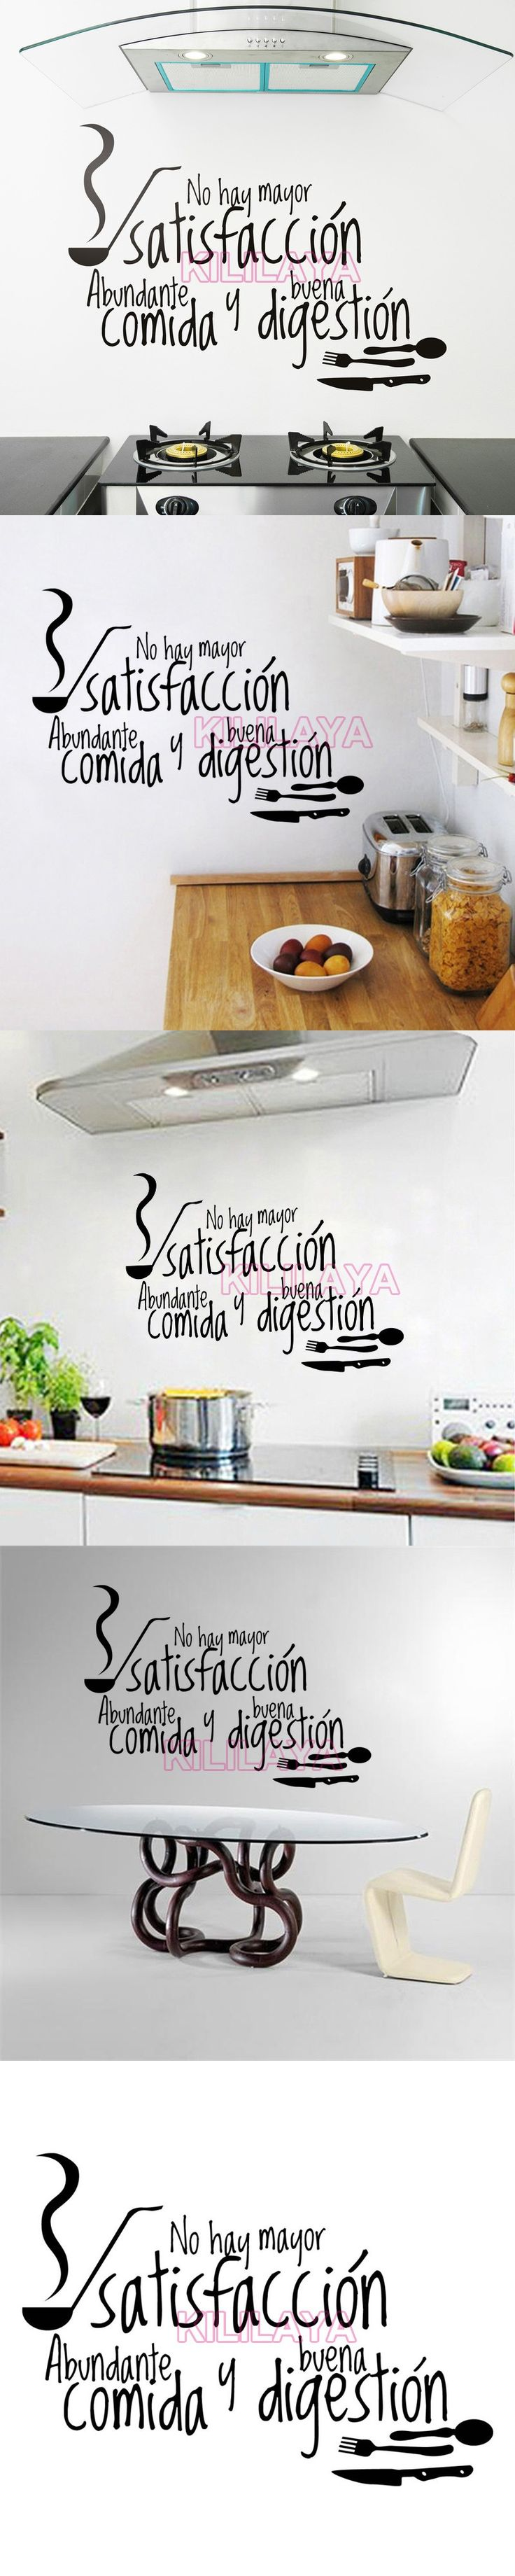 French Cuisine Stickers Vinyl Wall Tile Sticker Decals Mural Wall Art Wallpaper for Kitchen Home Decor House Decoration $11.5